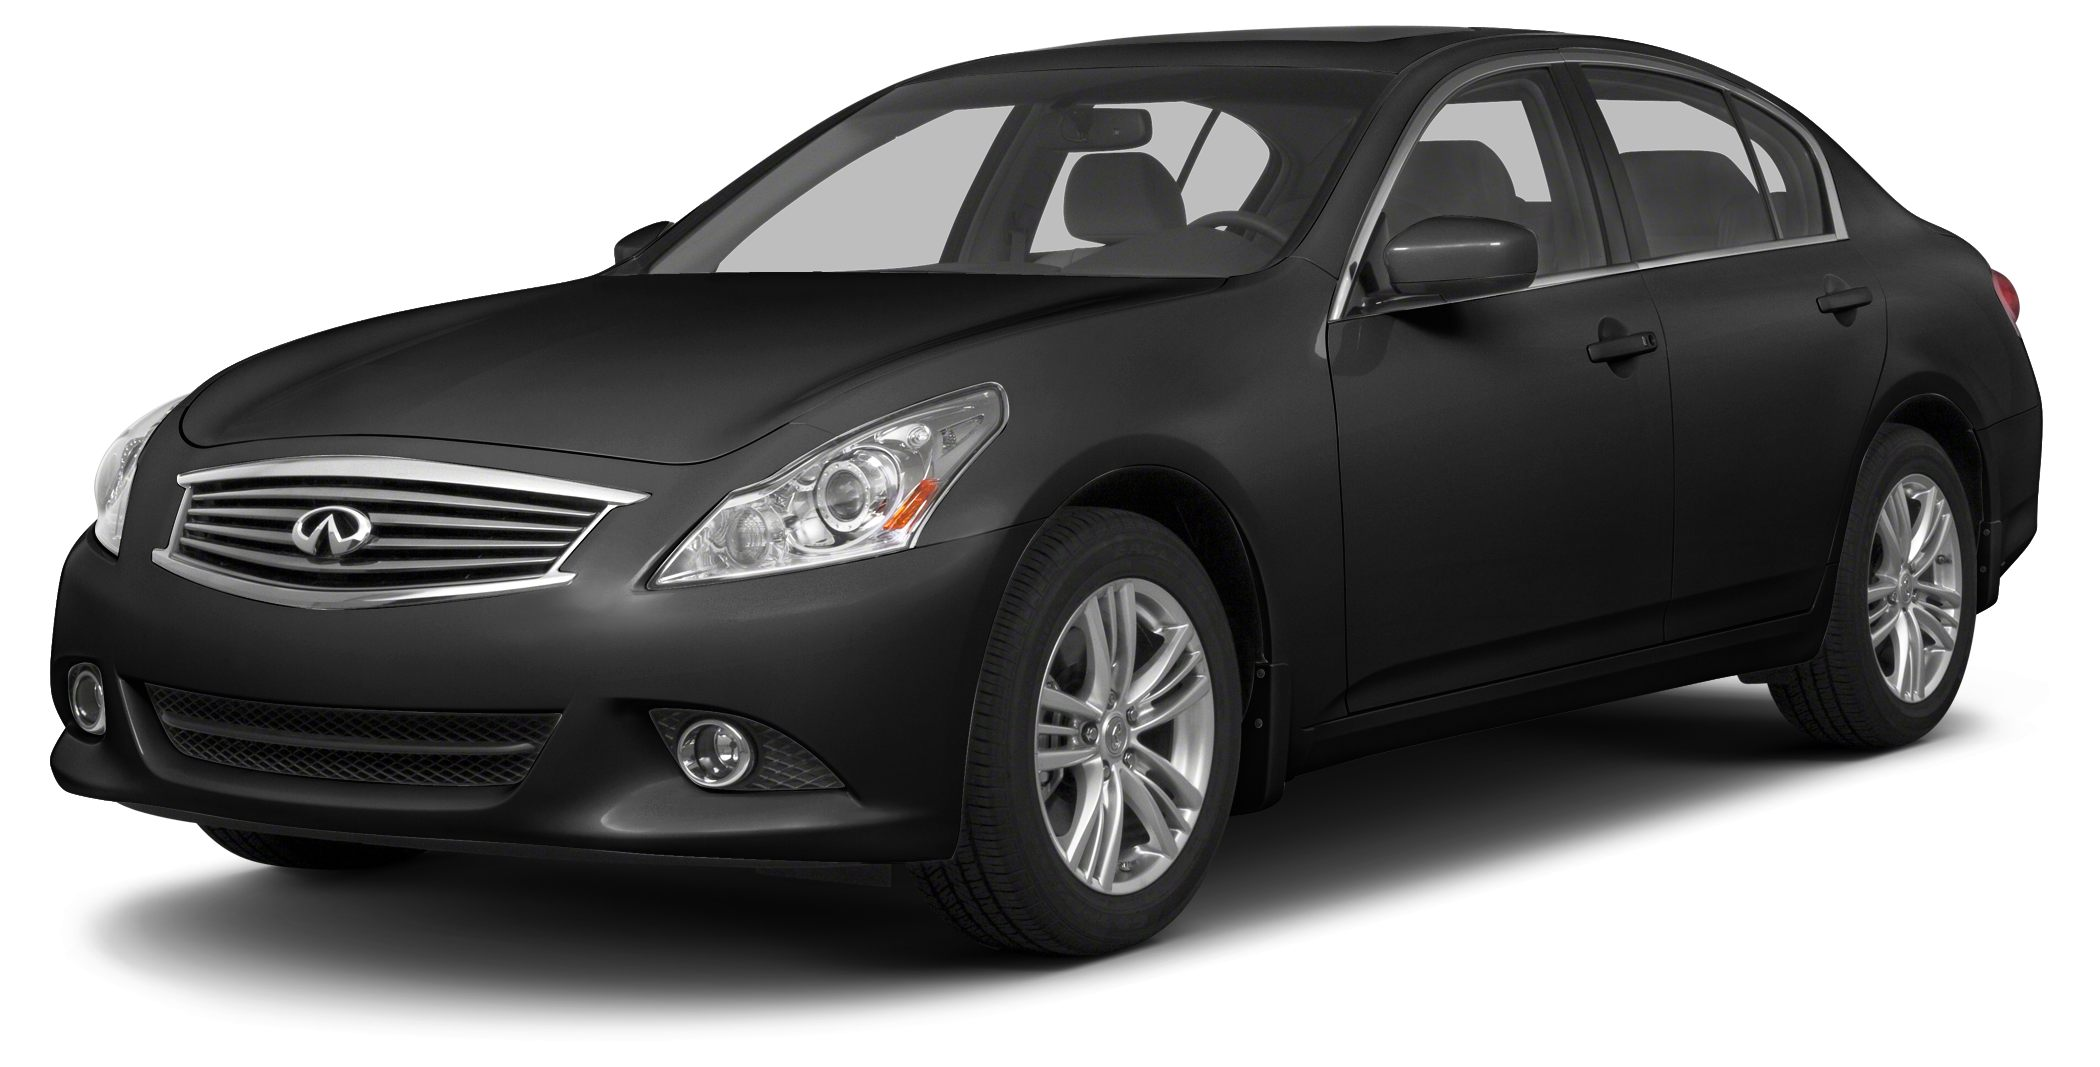 2013 Infiniti G37 Journey This vehicle really shows it was cared for by the previous owner You sh